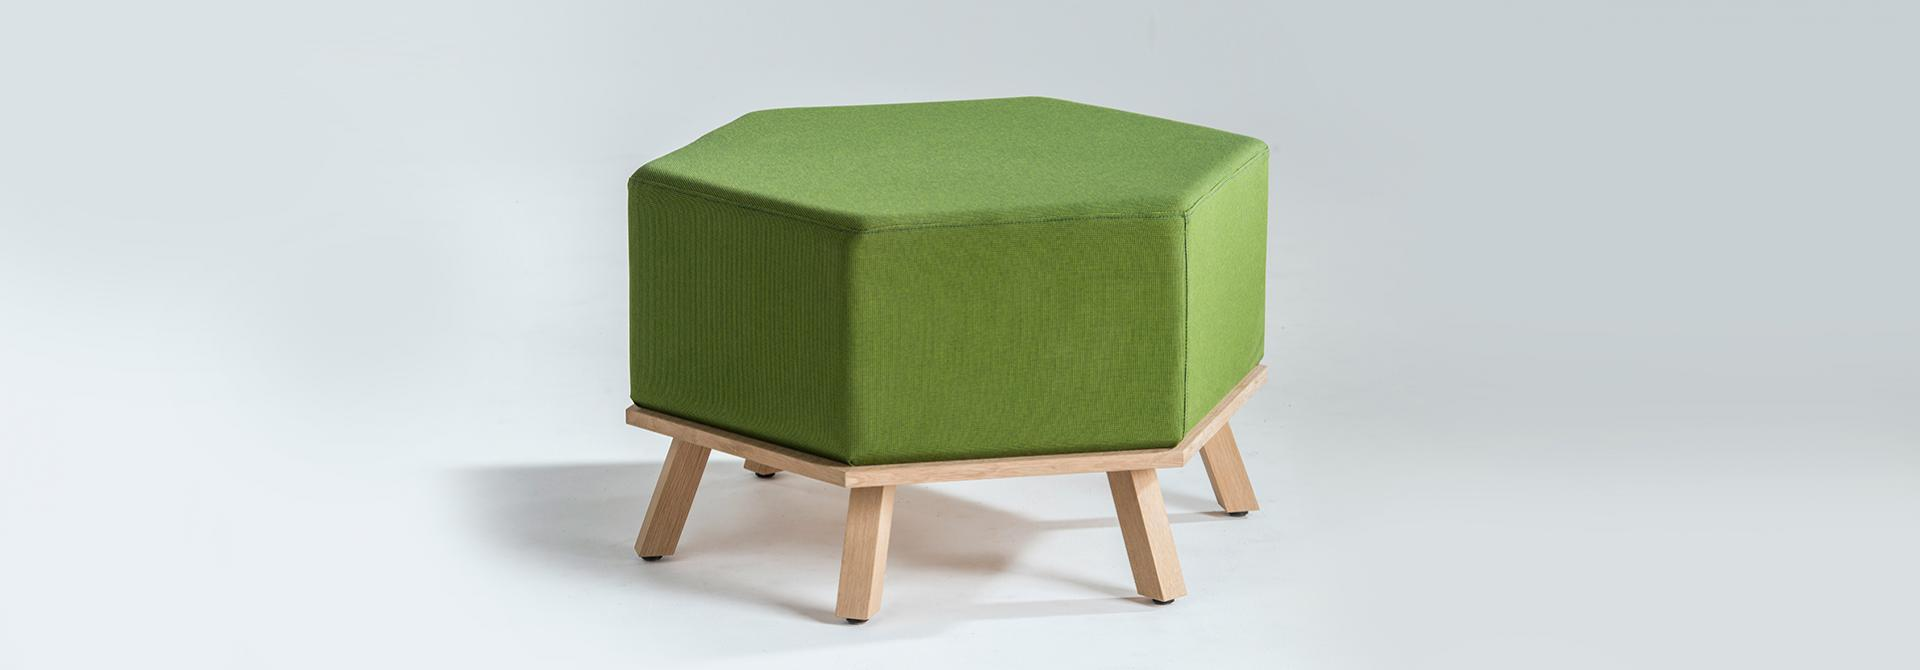 Pouf Hex green with wood table legs